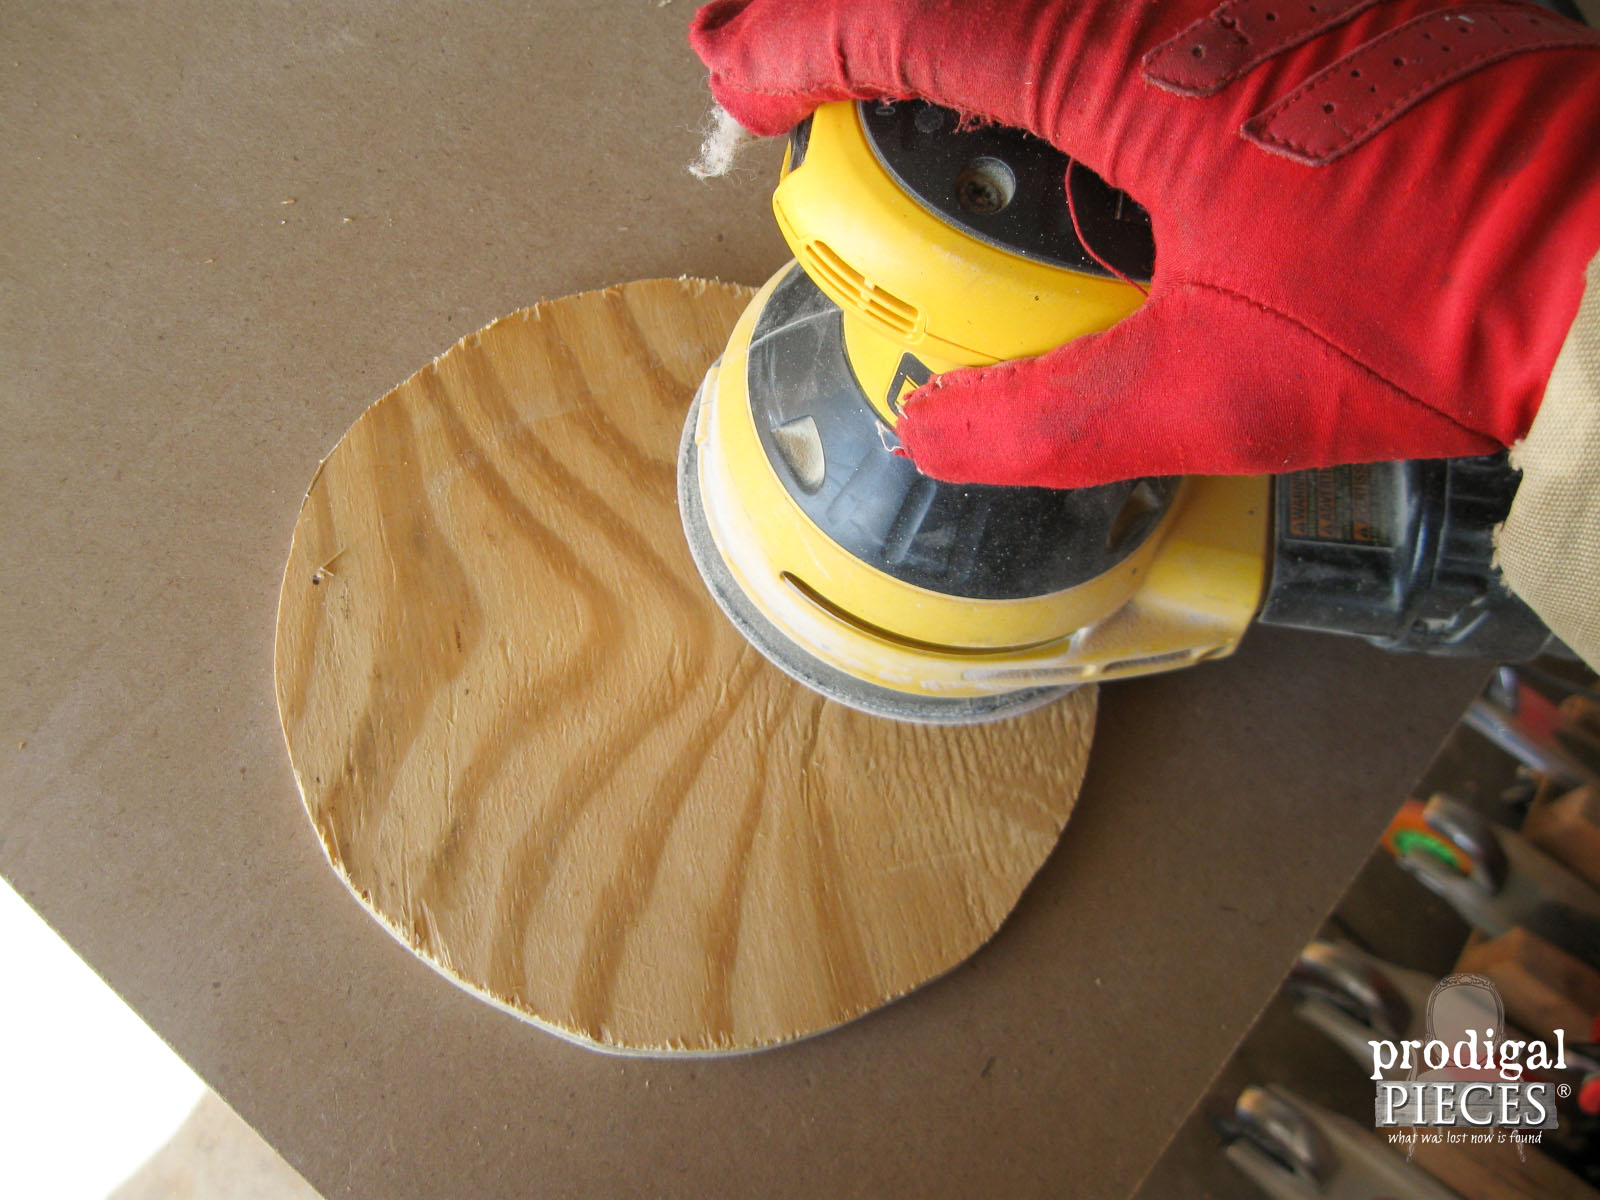 Sanding Plywood Wood Rounds | Prodigal Pieces | www.prodigalpieces.com